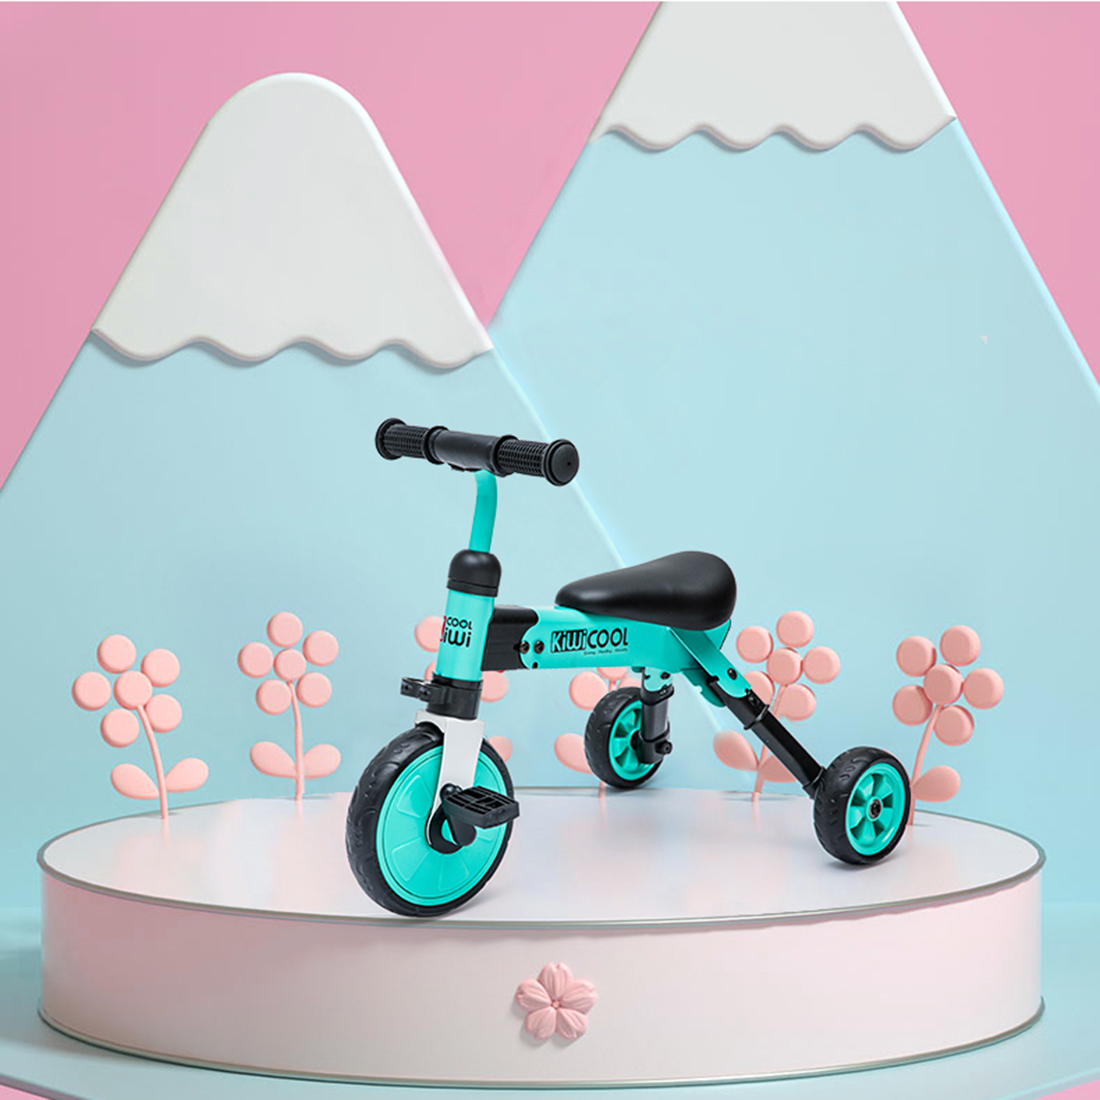 2 in 1 Carbon Steel Kids Tricycles Folding Lightweight Trike Baby Outdoor Riding Bicycle for 1 Innrech Market.com